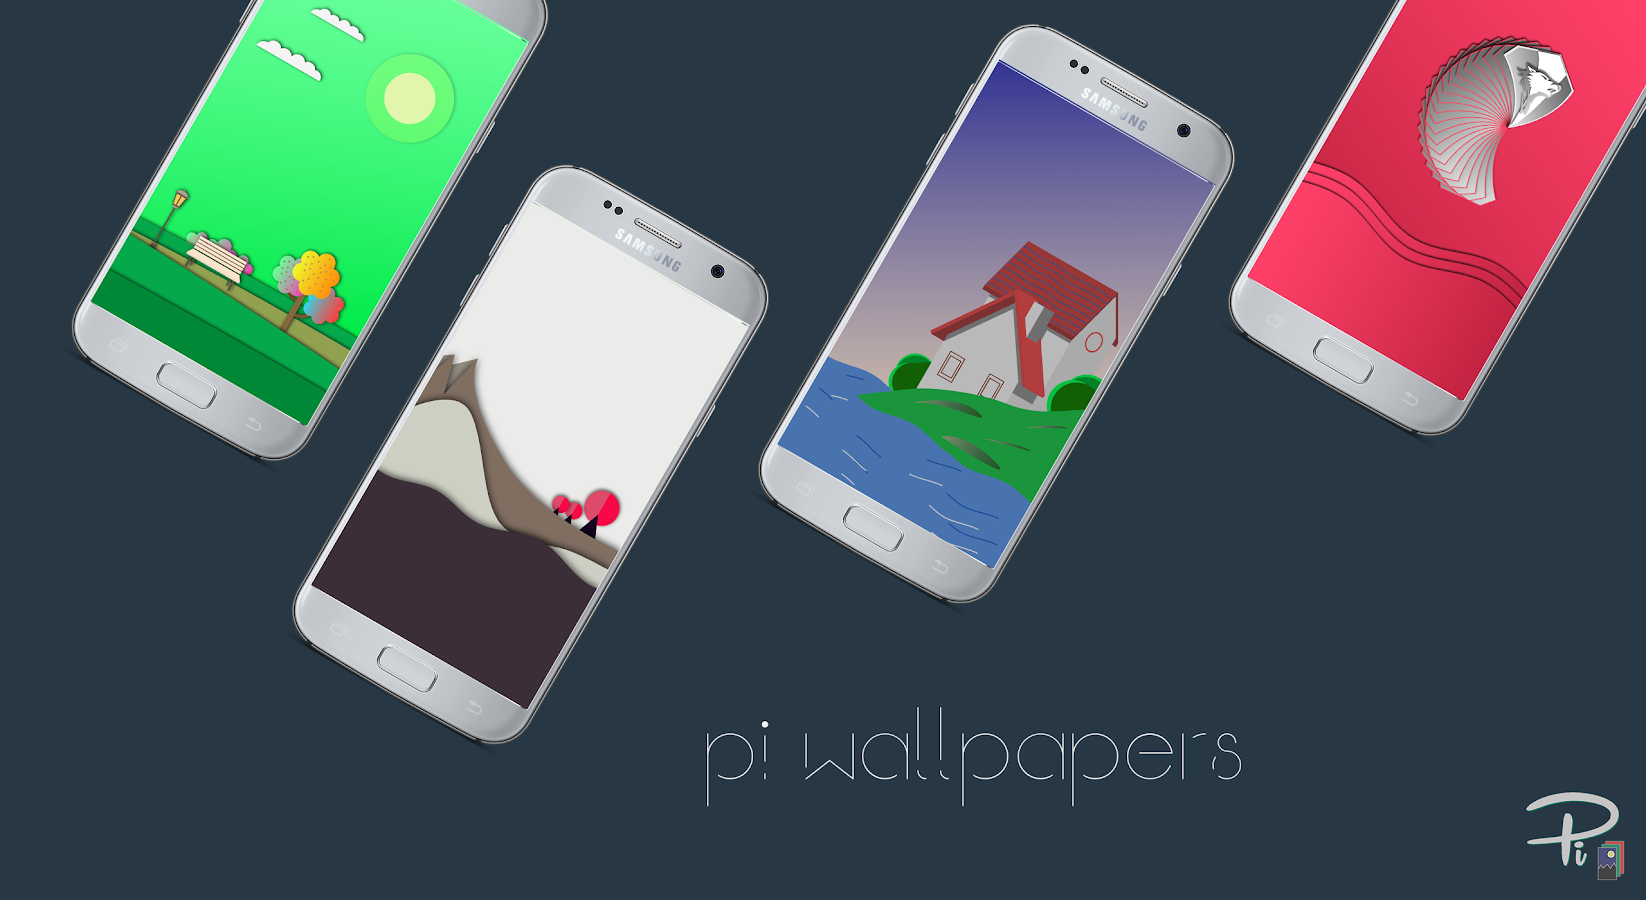 pi wallpapers  Screenshot